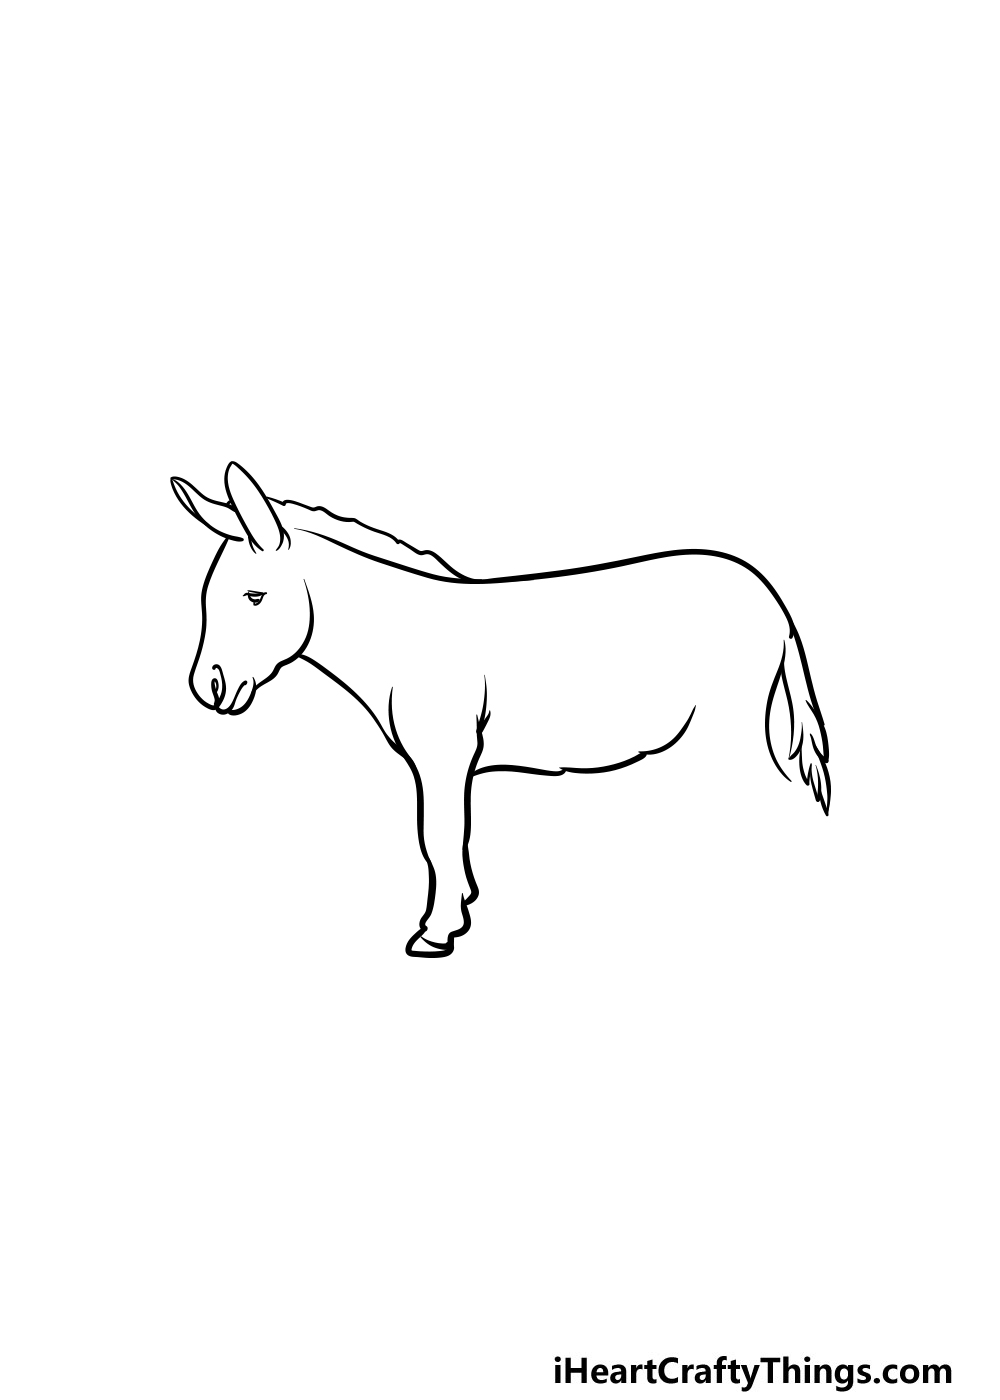 drawing a donkey step 3